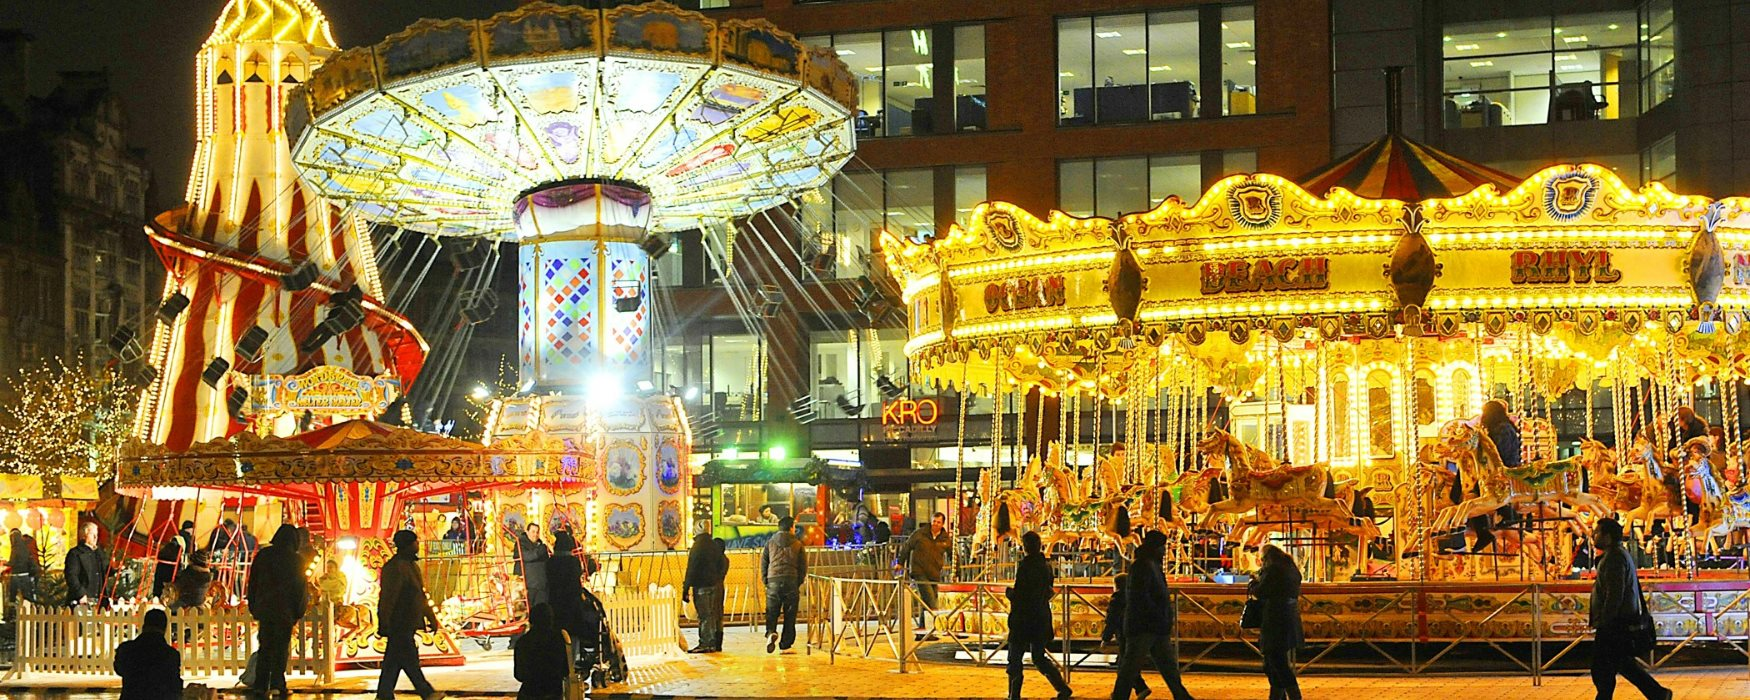 Family Events in Manchester